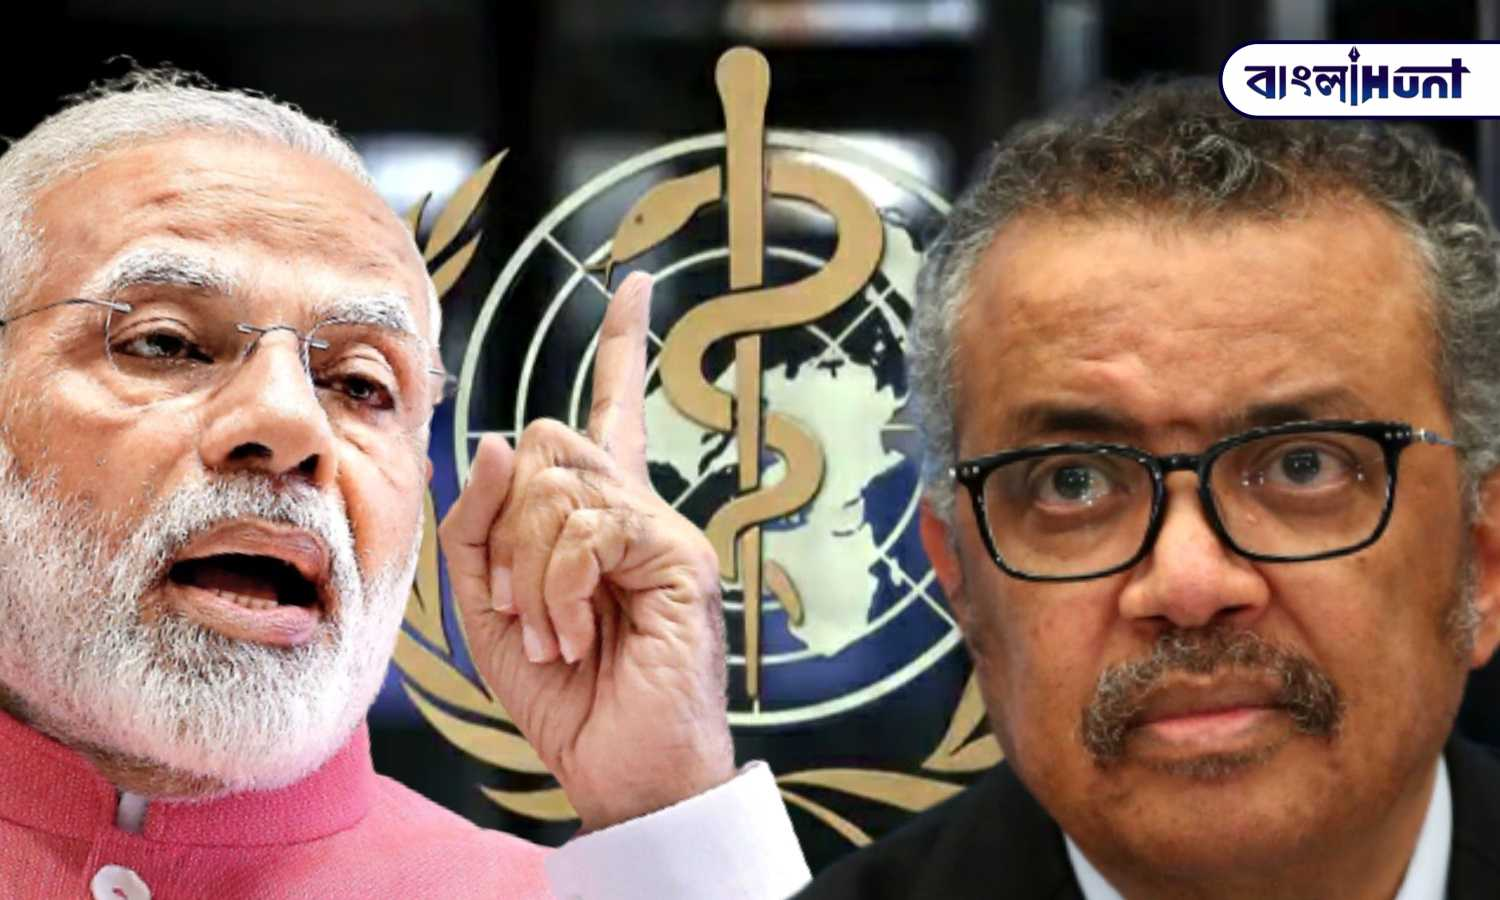 India sent a stern letter to the WHO, to correct the mistake